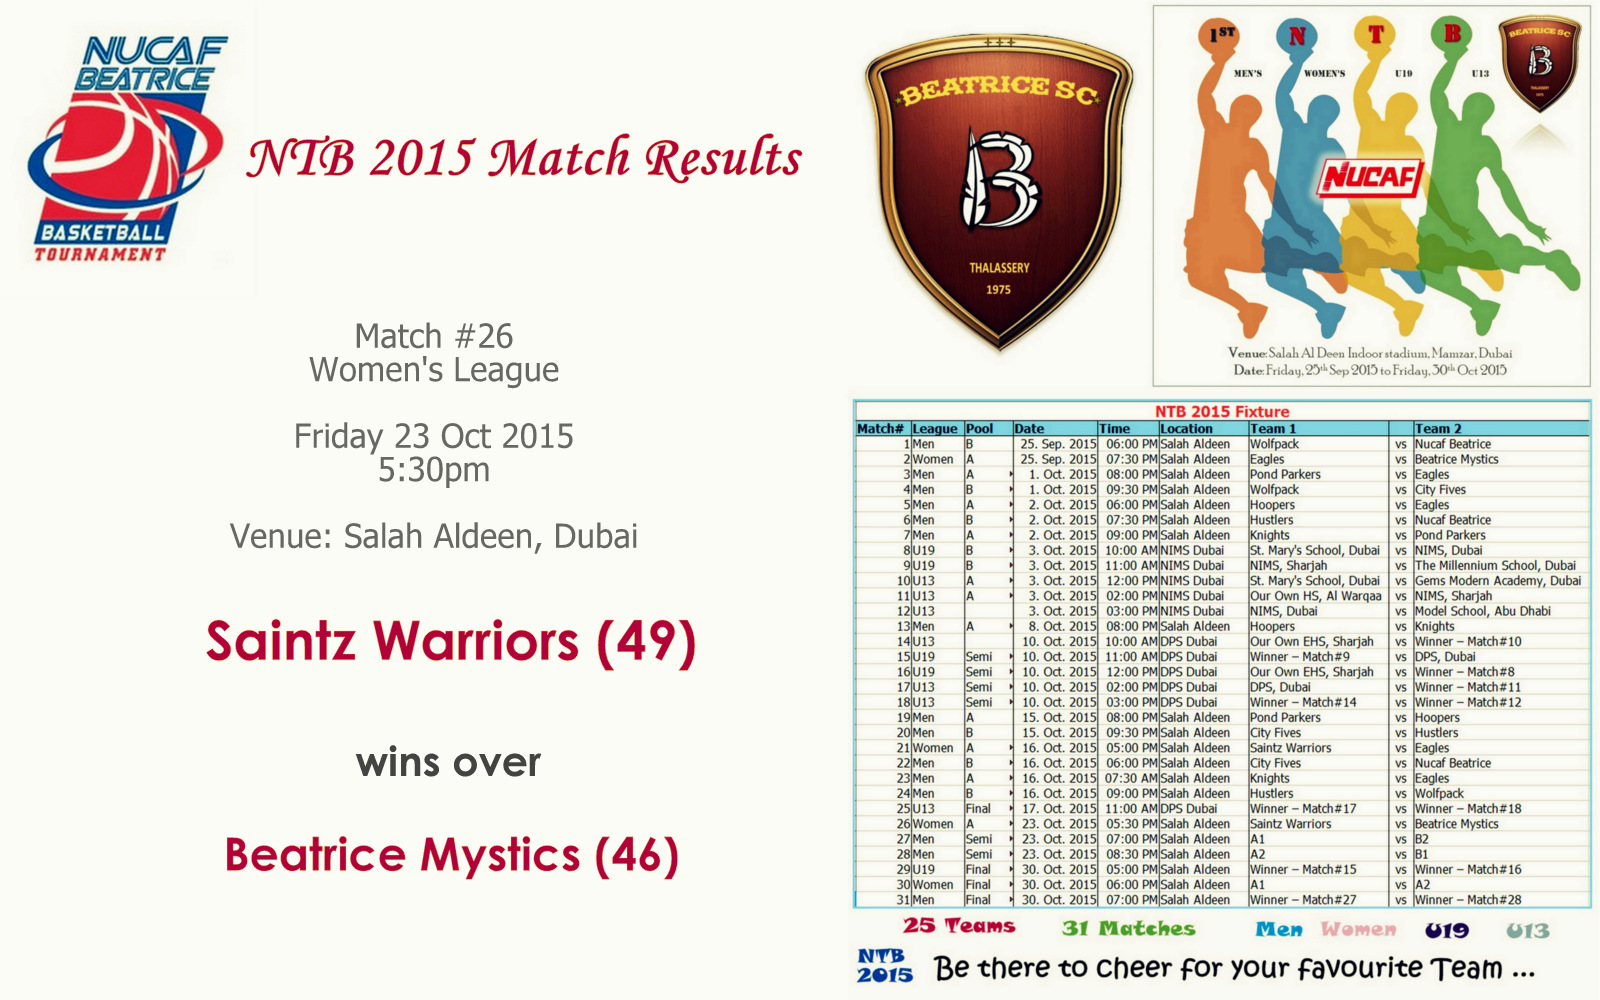 NTB 2015 – Match #26 | Saintz Warriors (49) Vs Beatrice Mystics (46)